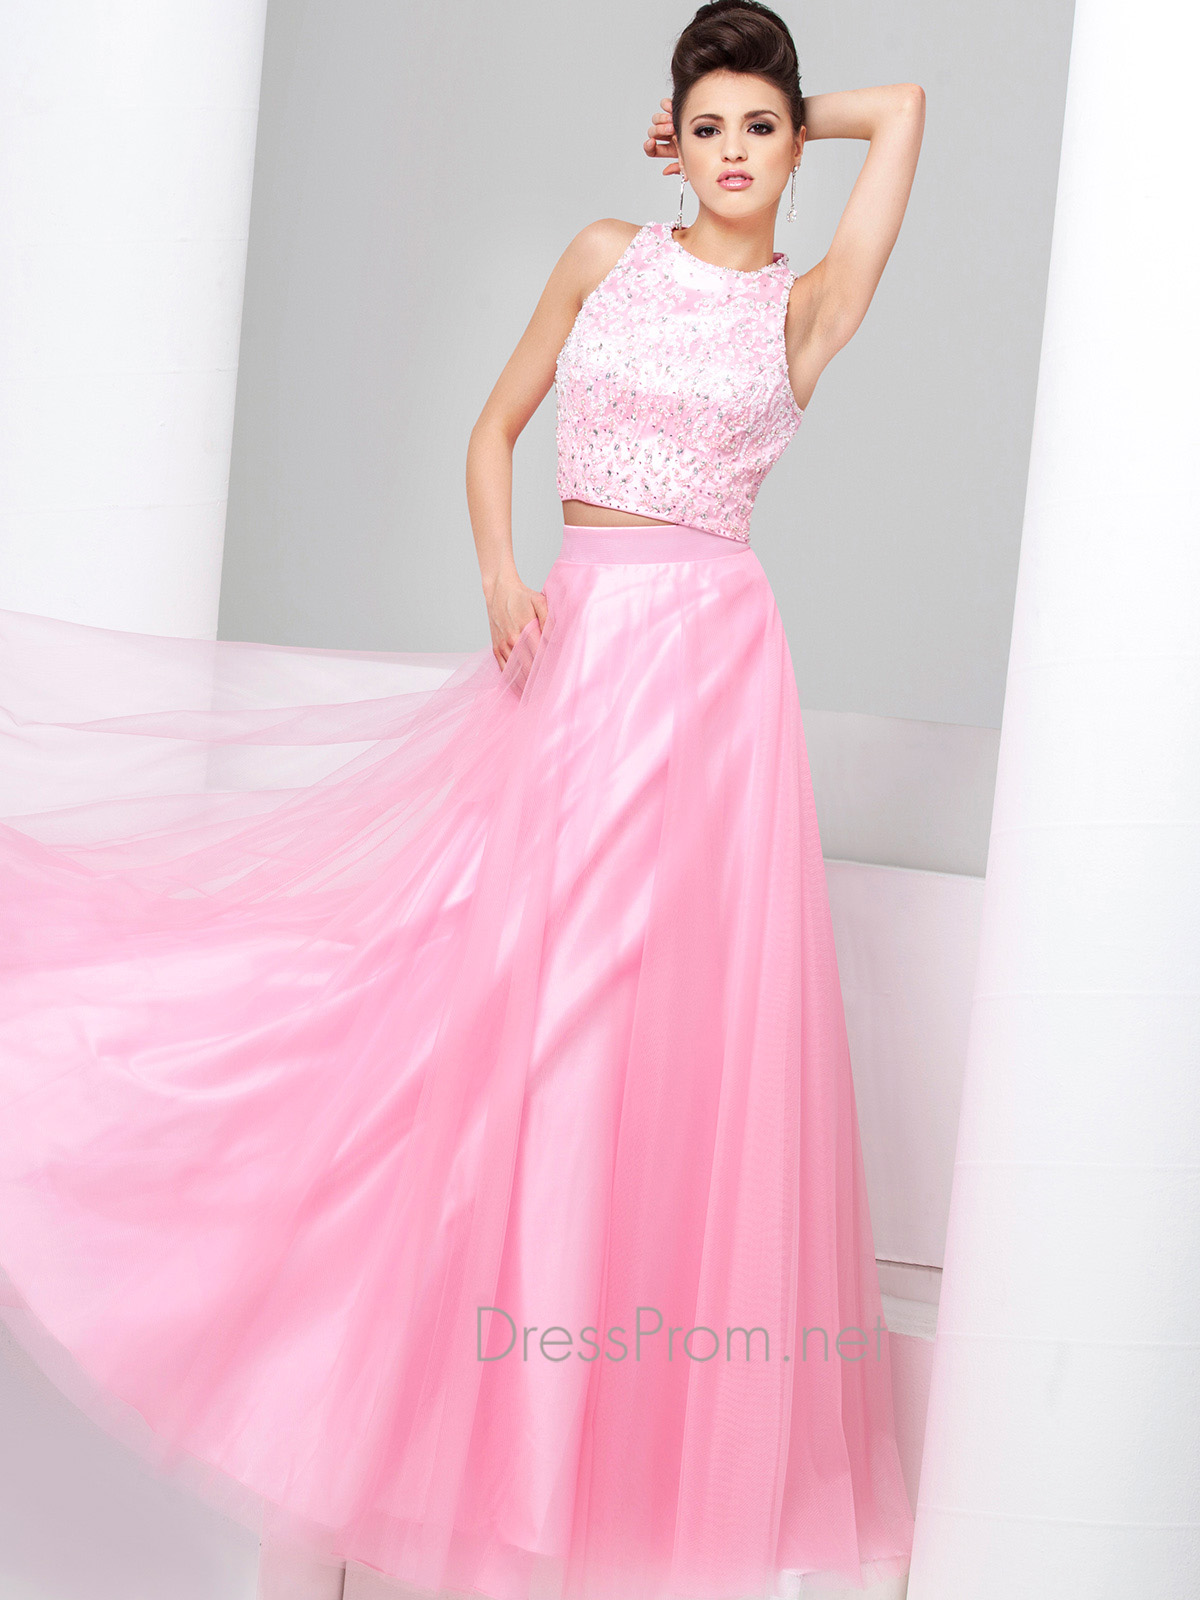 Prom Dresses In Baton Rouge